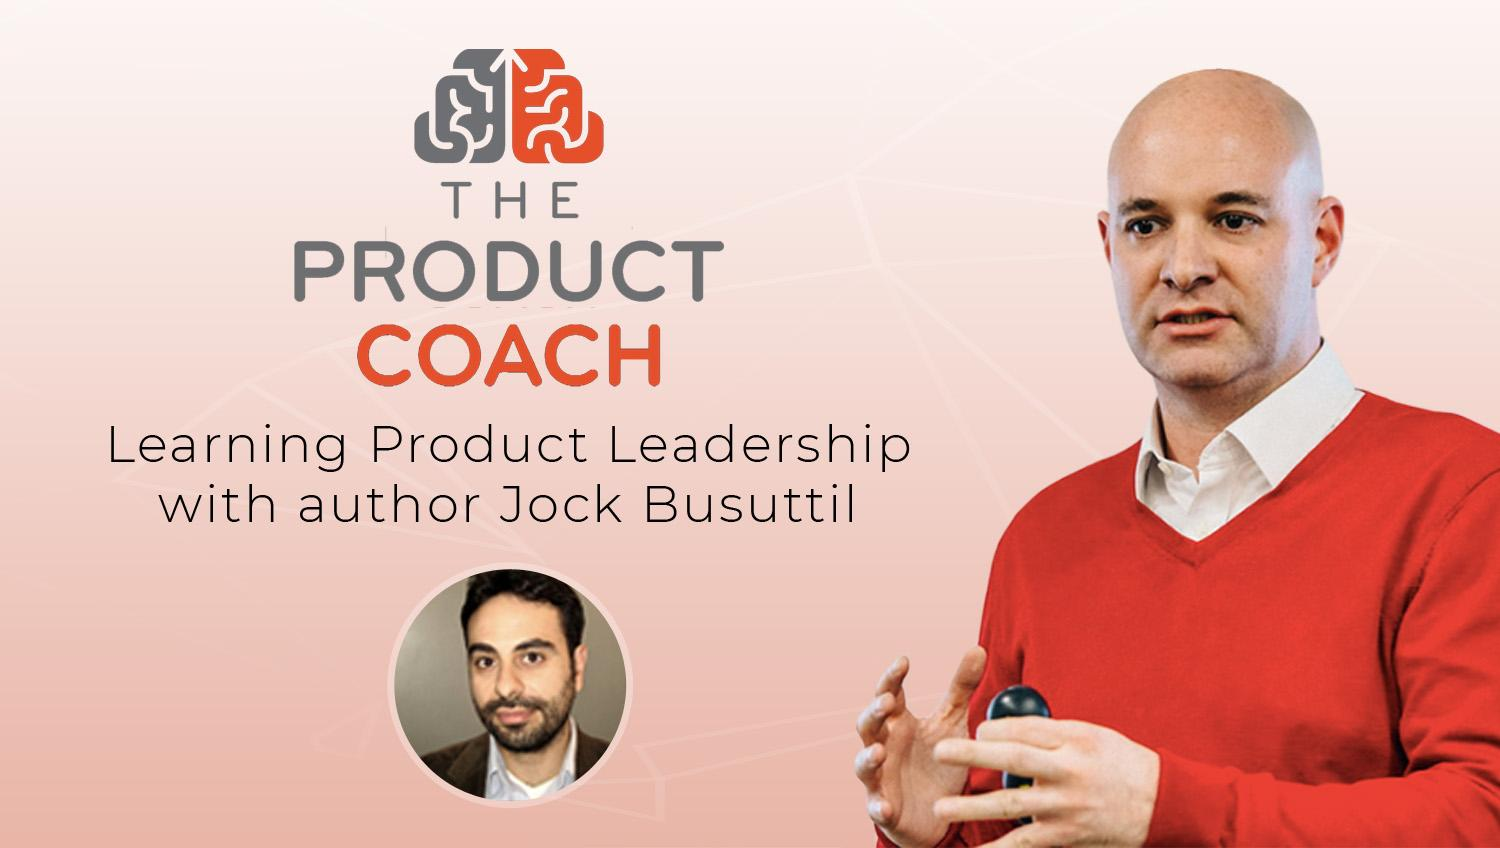 The Product Coach - Learning Product Leadership with author Jock Busuttil